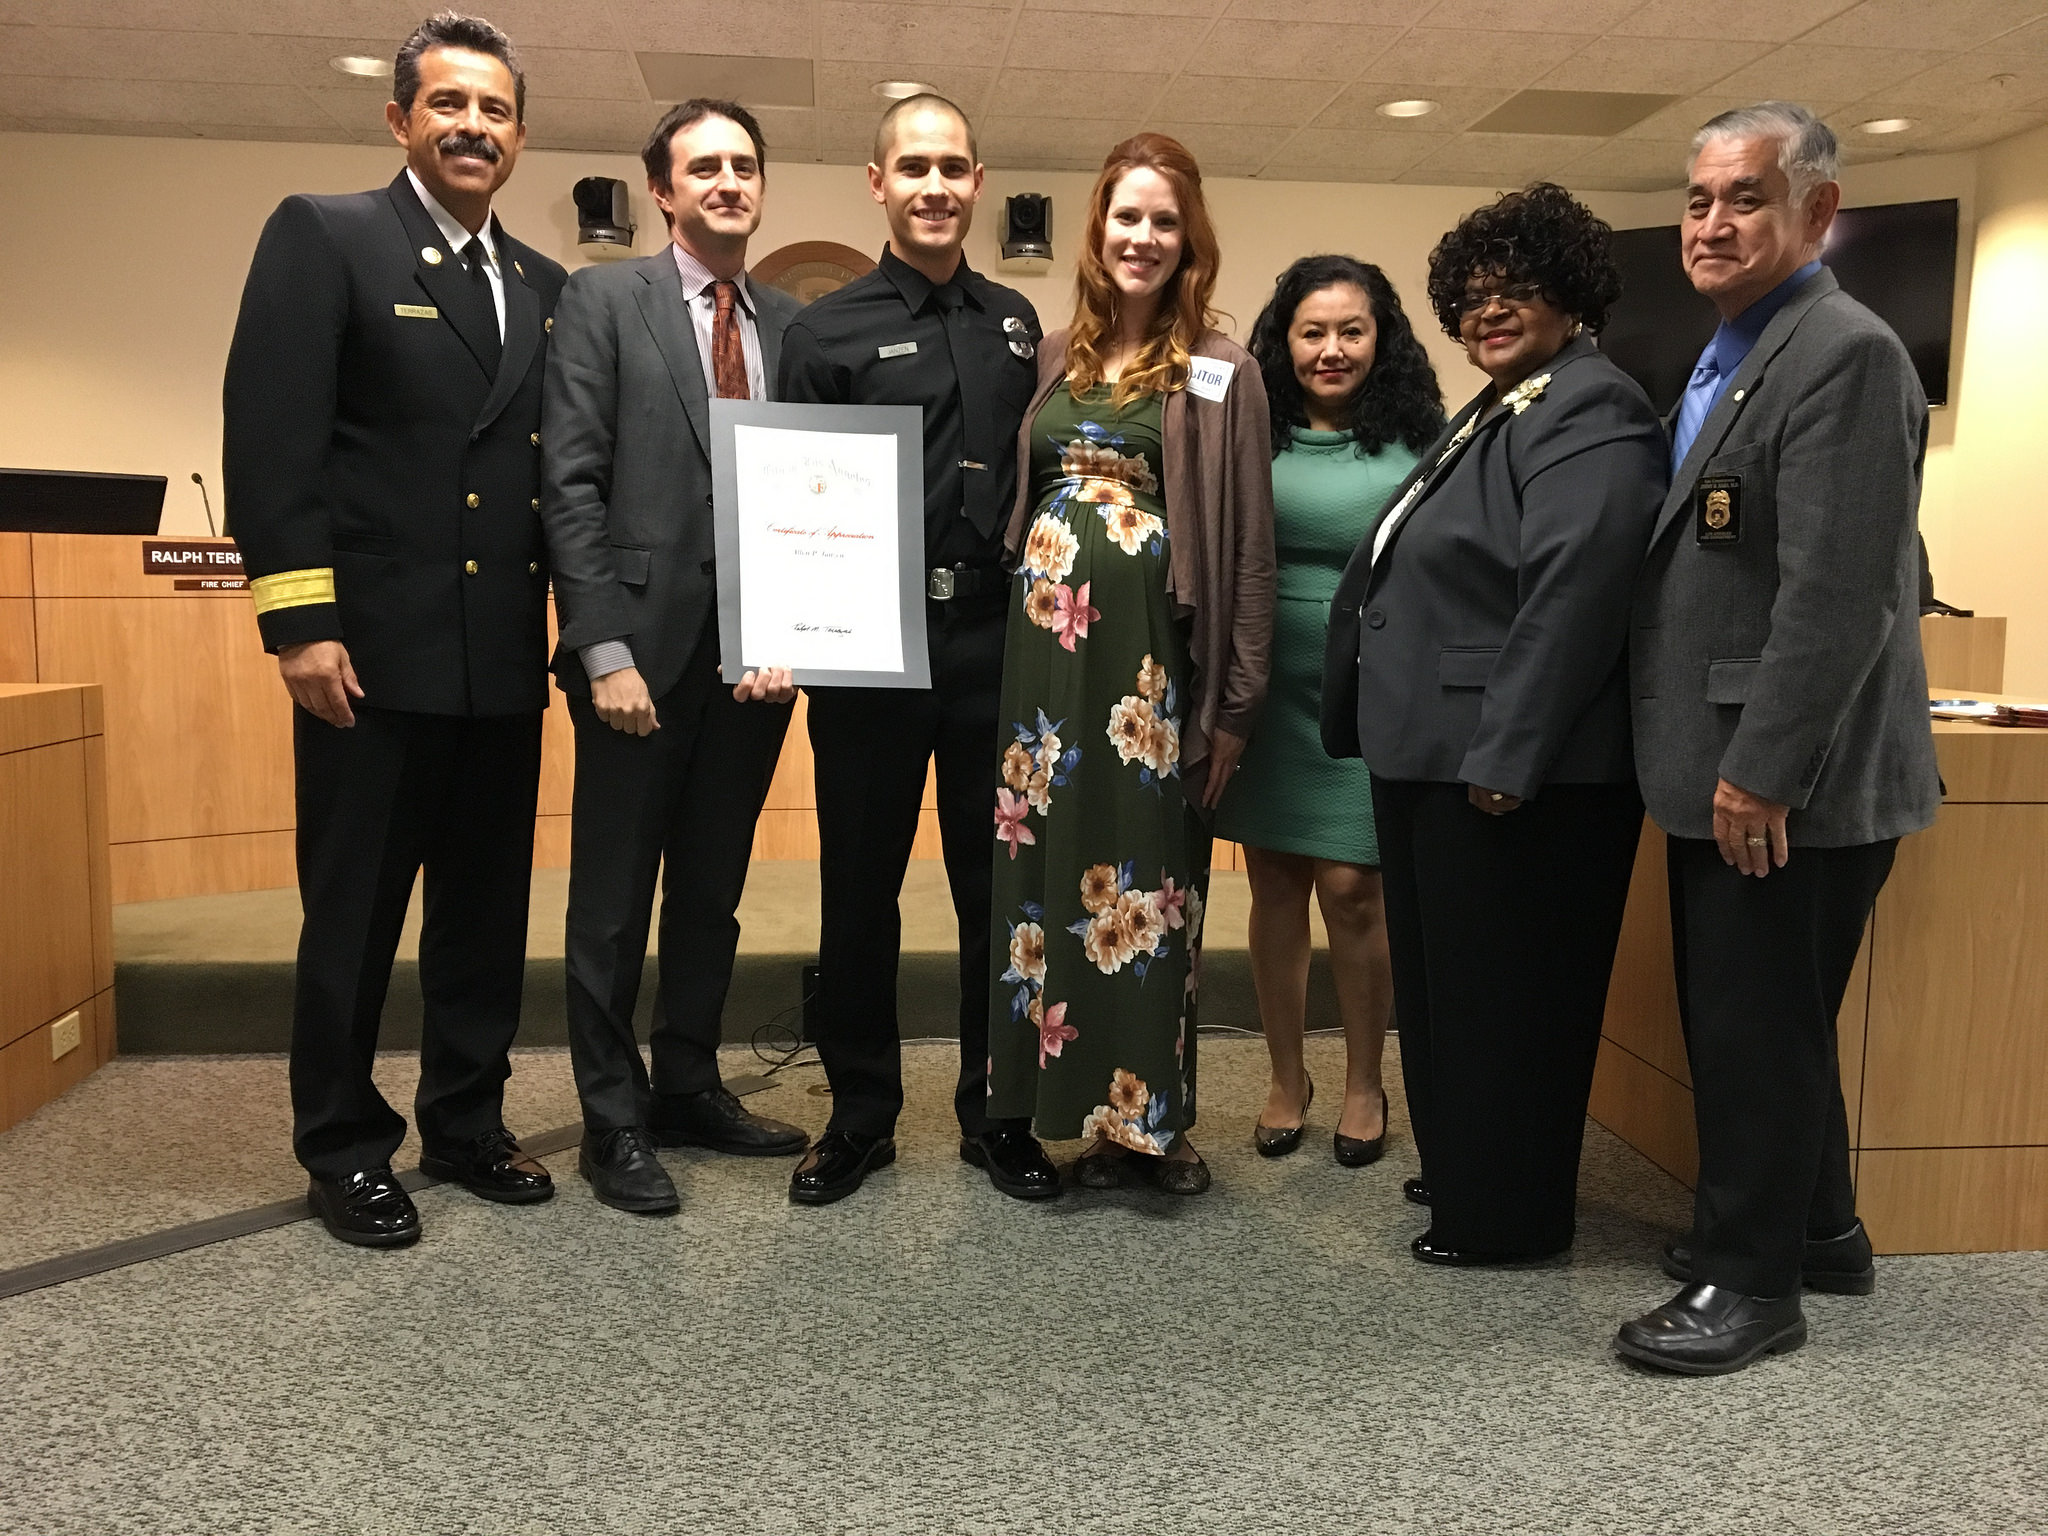 Image of Firefighter awardee standing with with wife, Fire Chief and members of the Board of Fire Commissioners